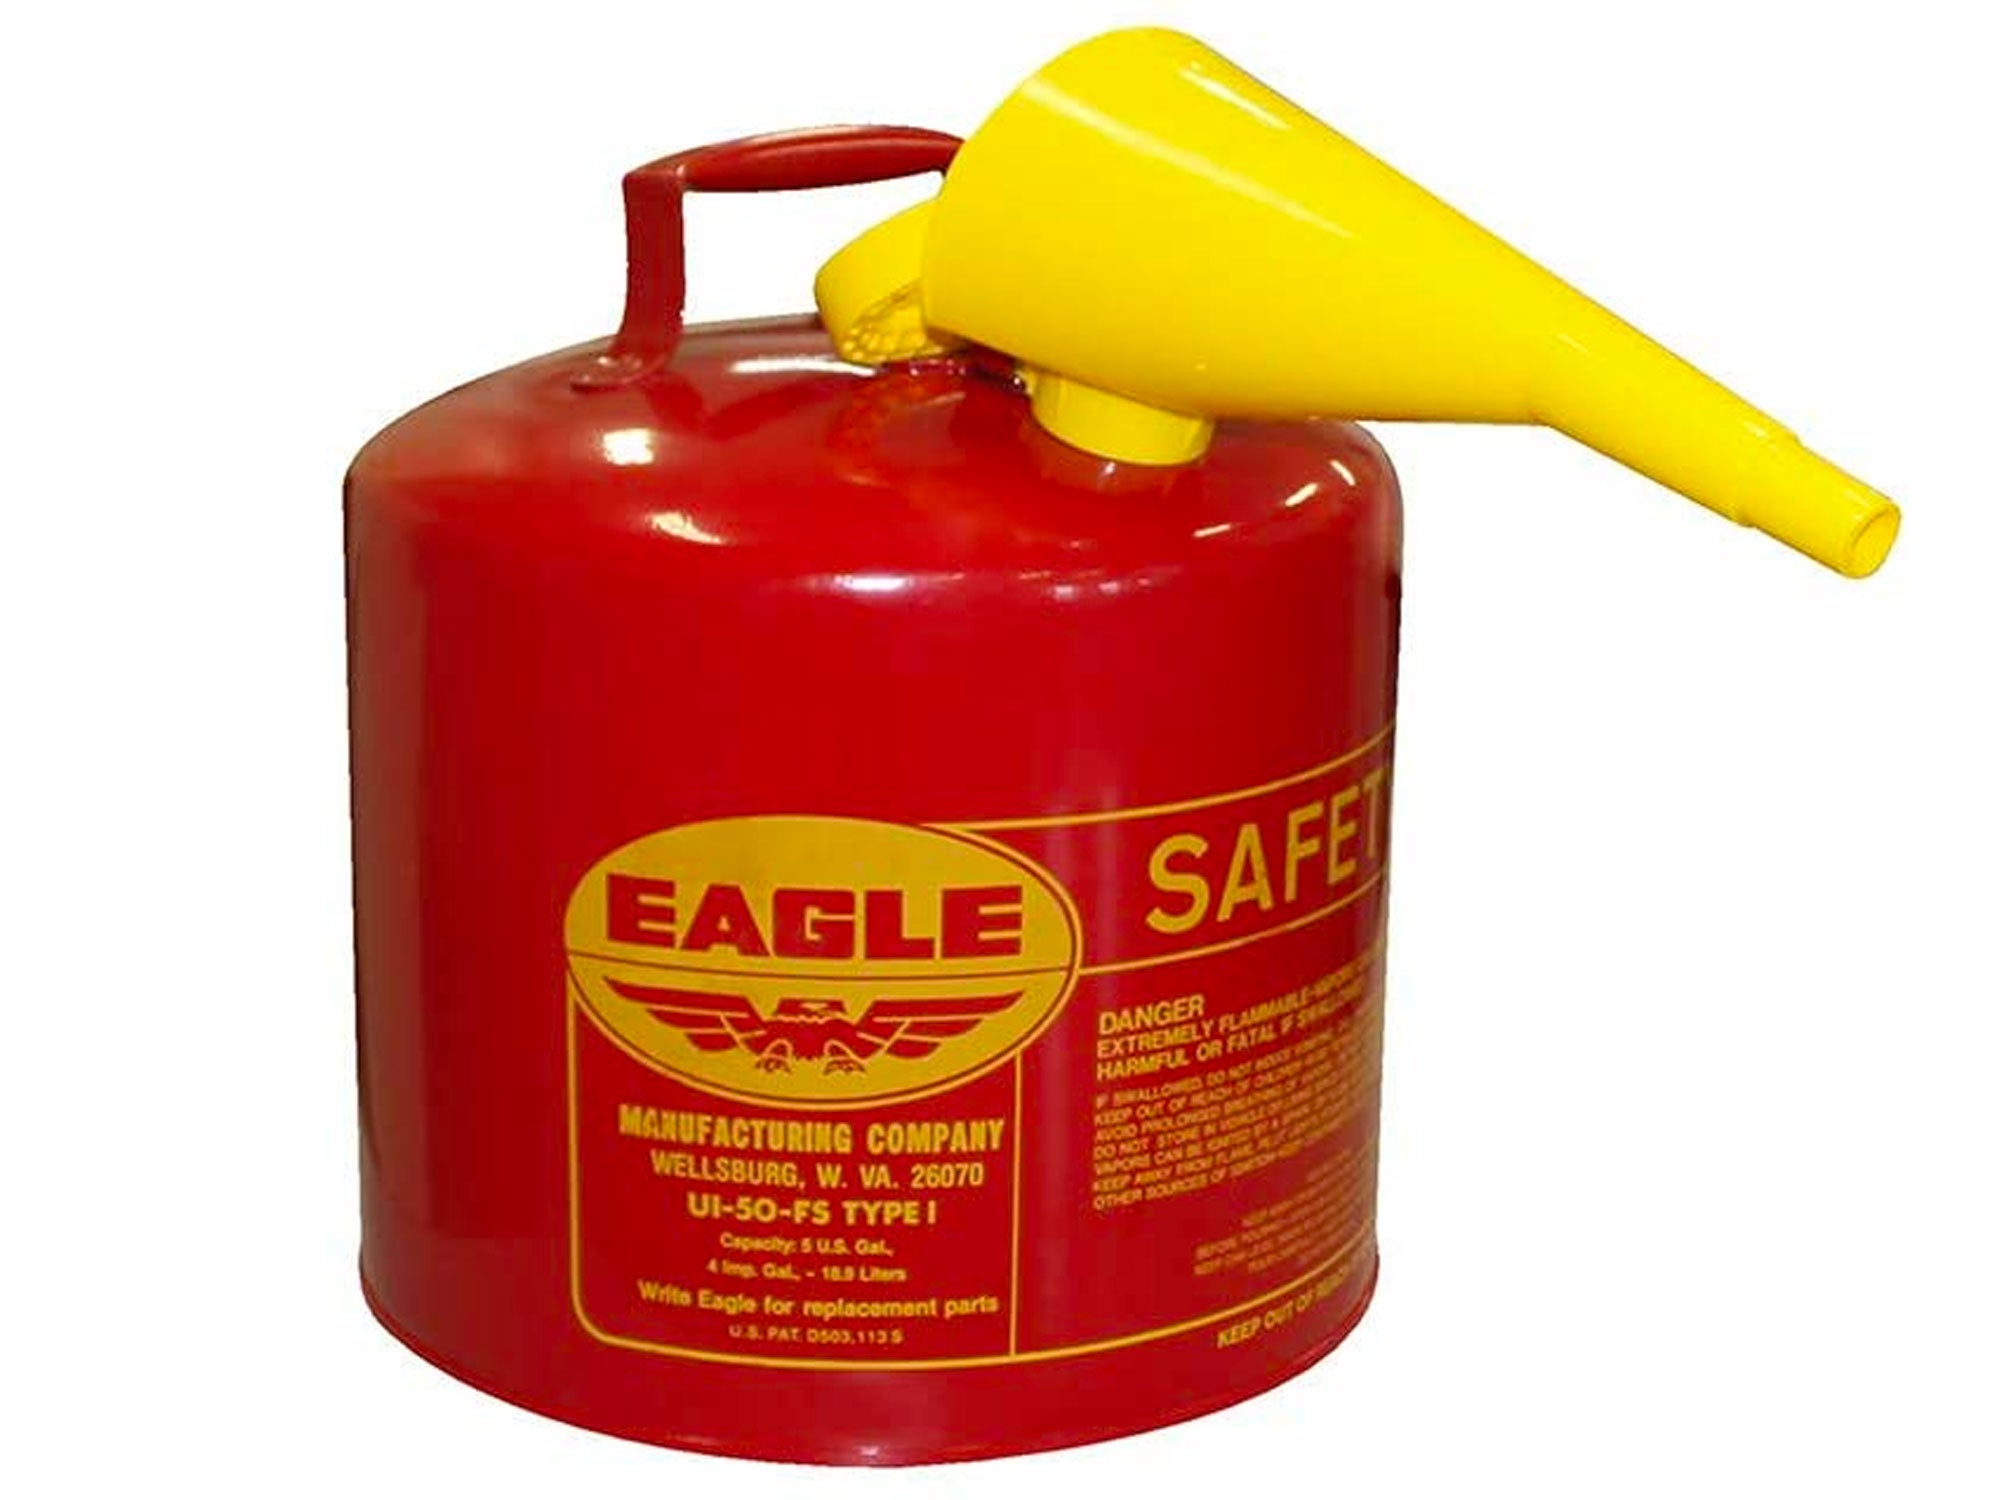 UI-50-FS Red Galvanized Steel Type I Gasoline Safety Can with Funnel, 5 Gallon Capacity, 13.5